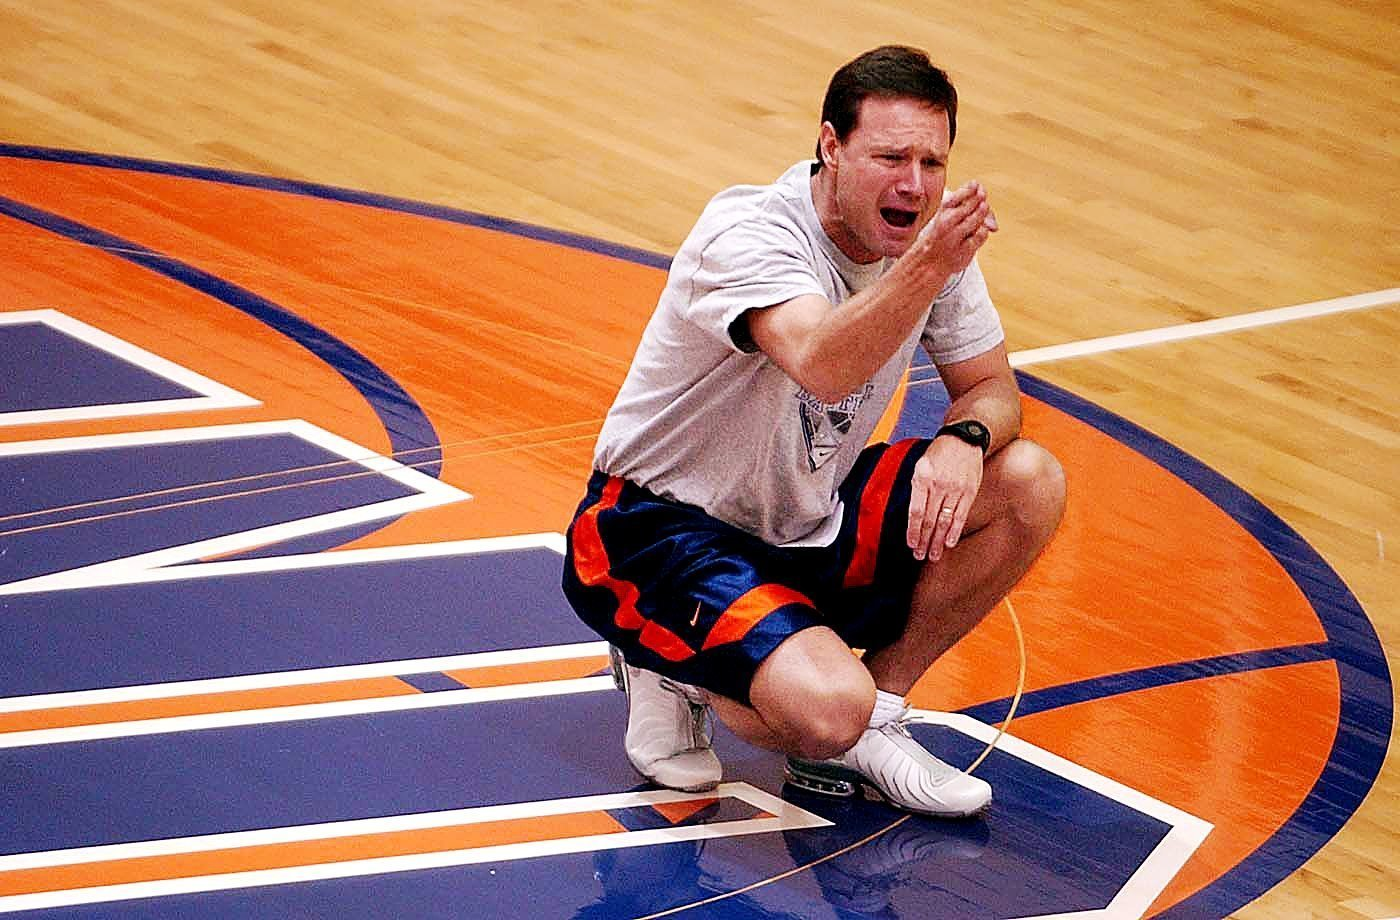 On eve of Hall of Fame enshrinement Bill Self reflects on short tenure at Illinois  Chicago